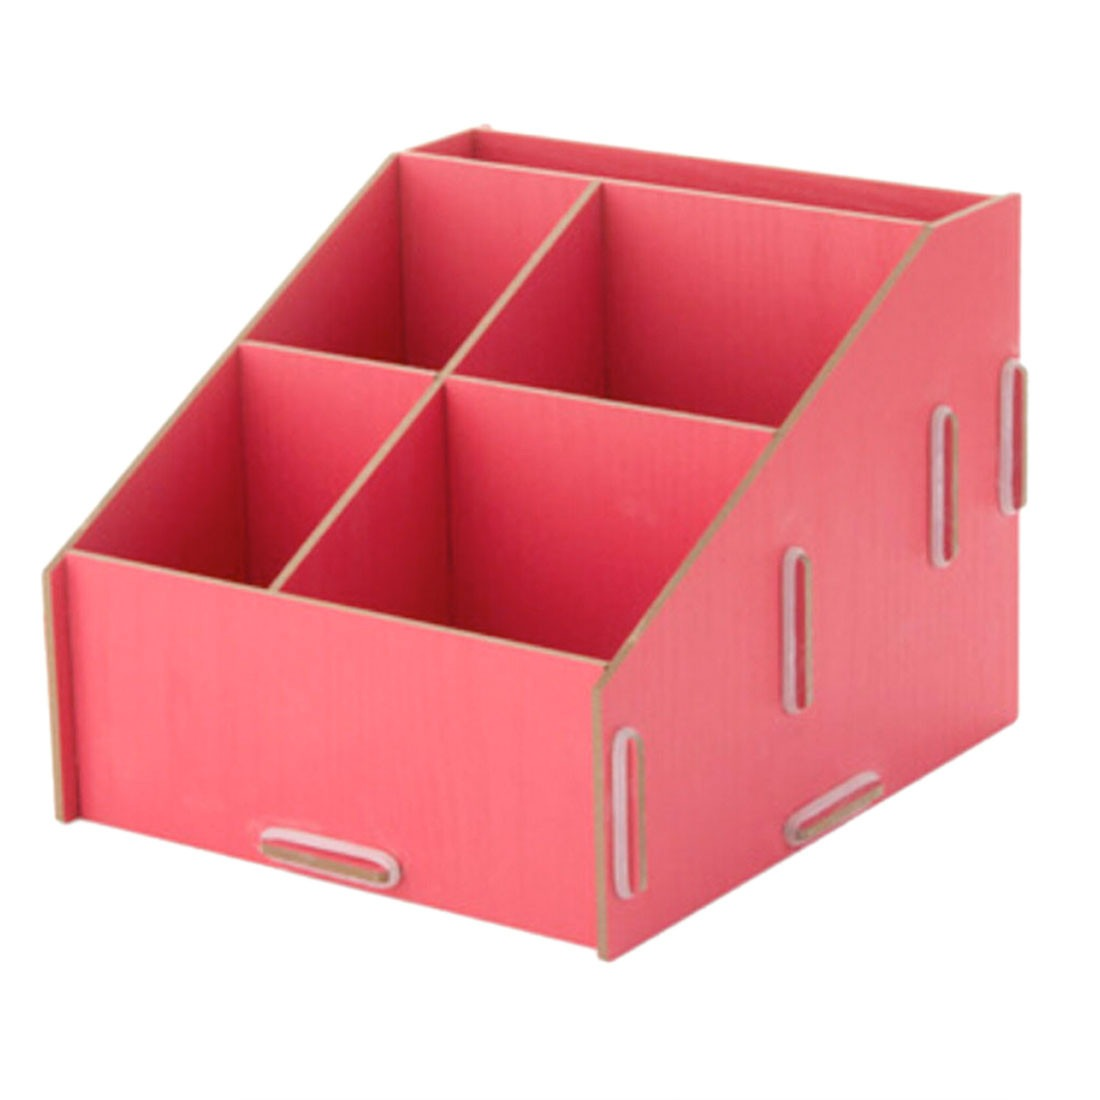 Diy wooden cosmetic small goods container desk bathroom - Small bathroom storage boxes ...